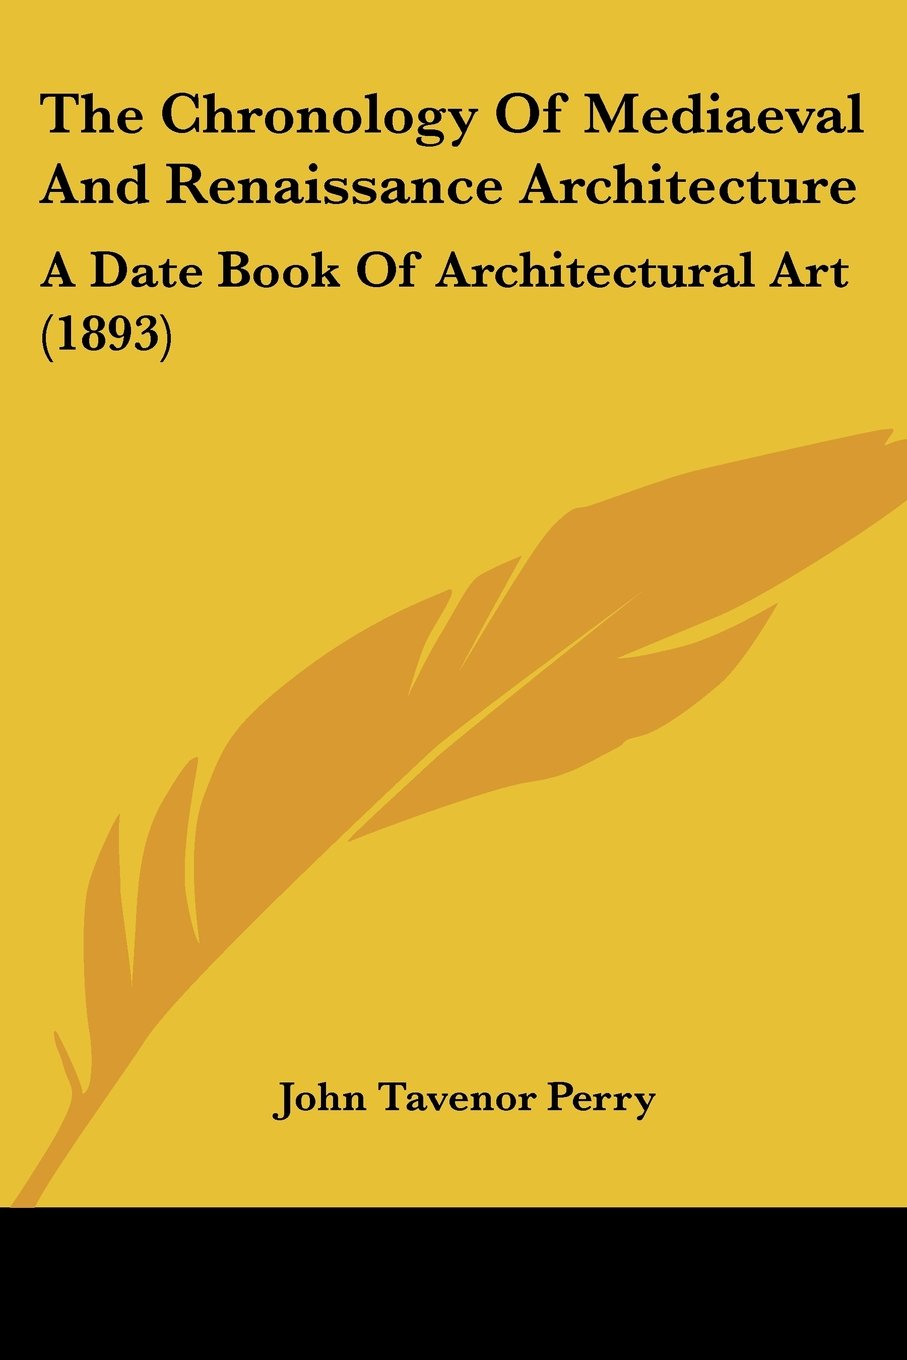 The Chronology Of Mediaeval And Renaissance Architecture: A Date Book Of Architectural Art (1893) ebook